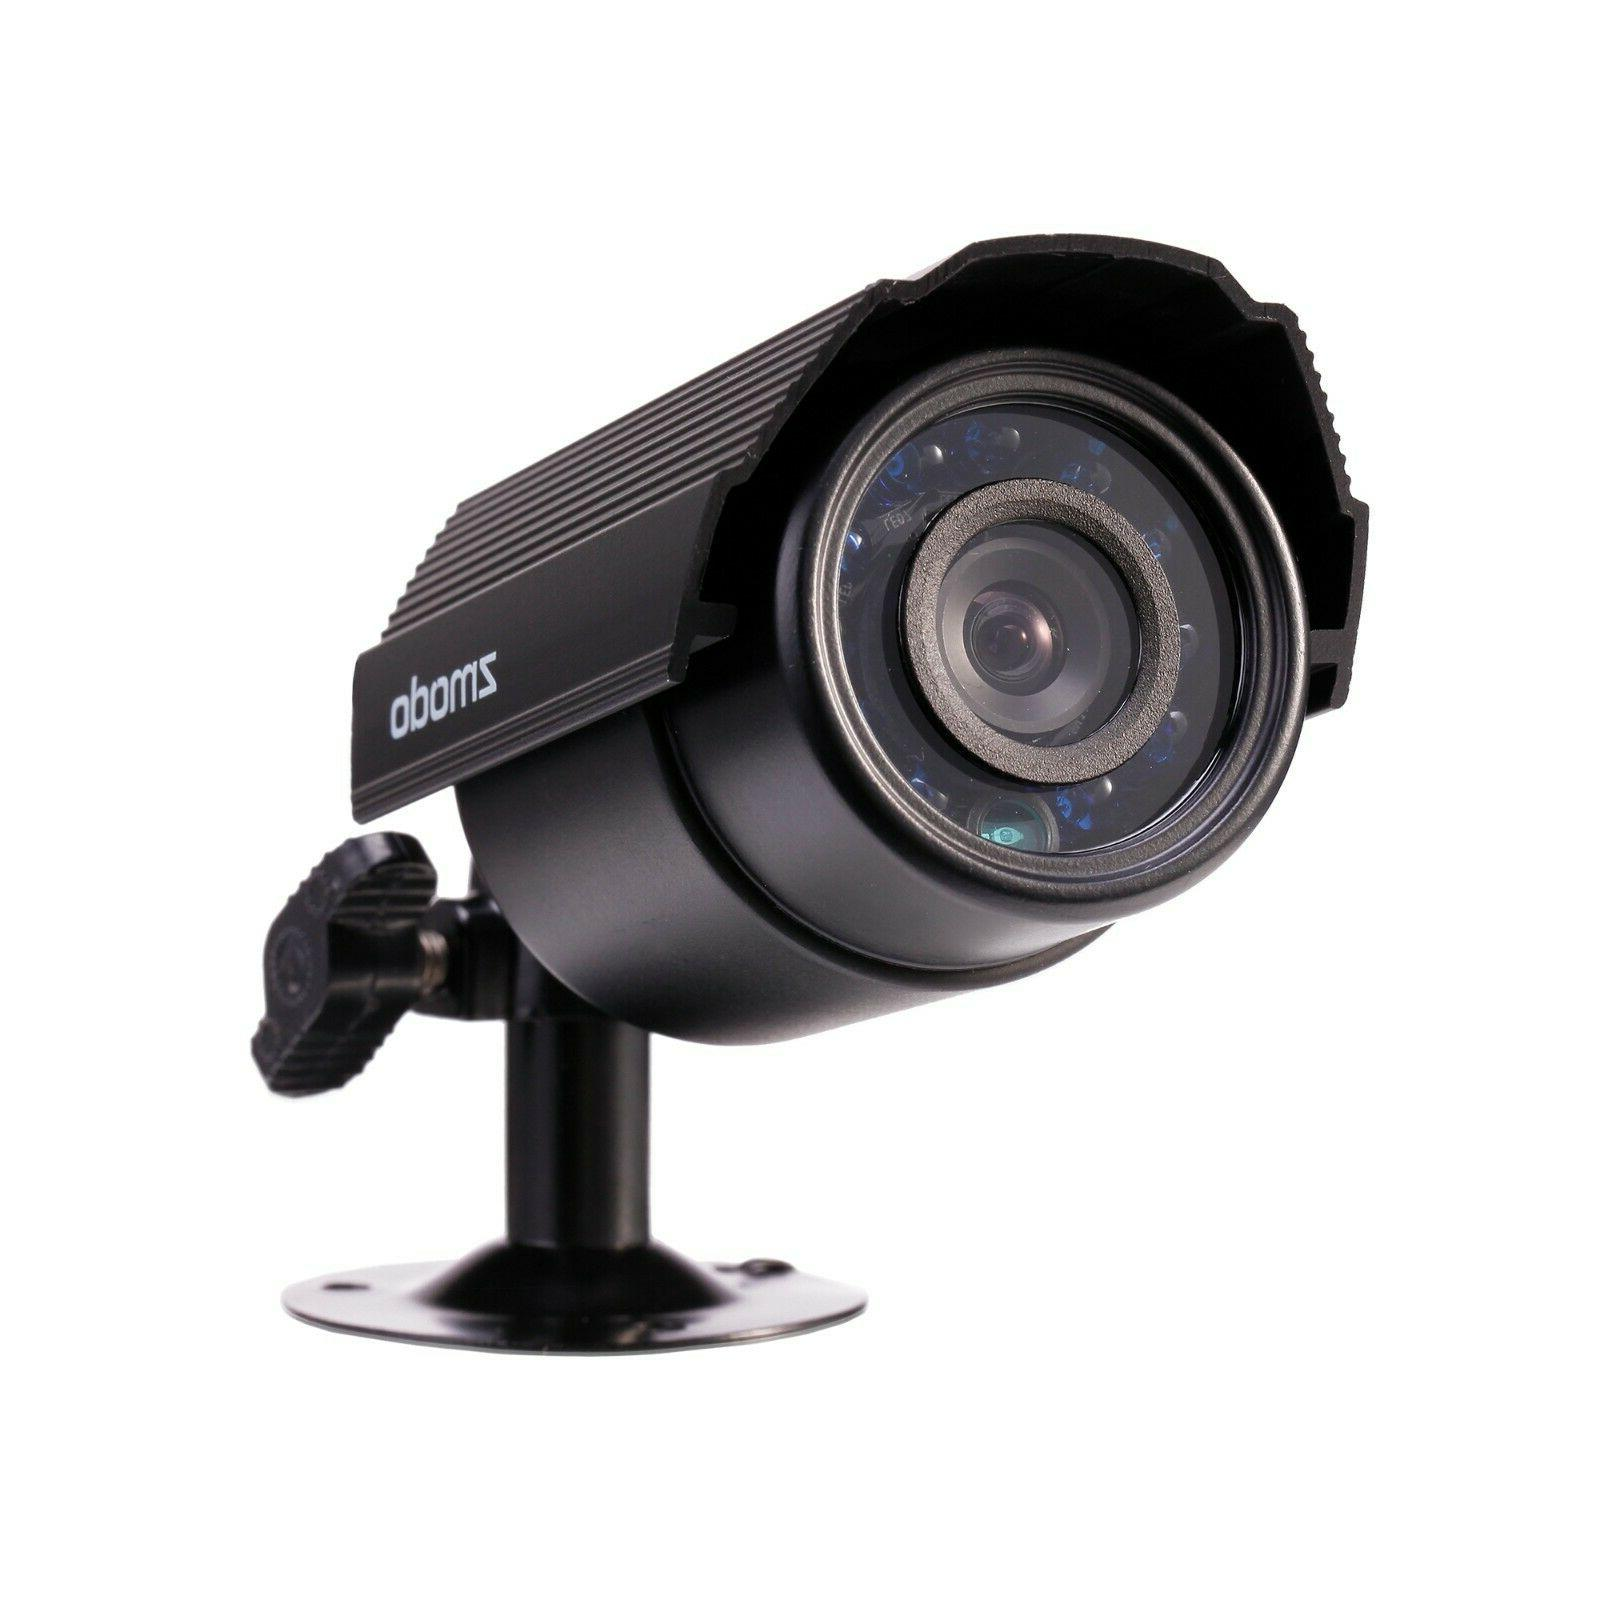 Zmodo Analog CCTV Security Cameras